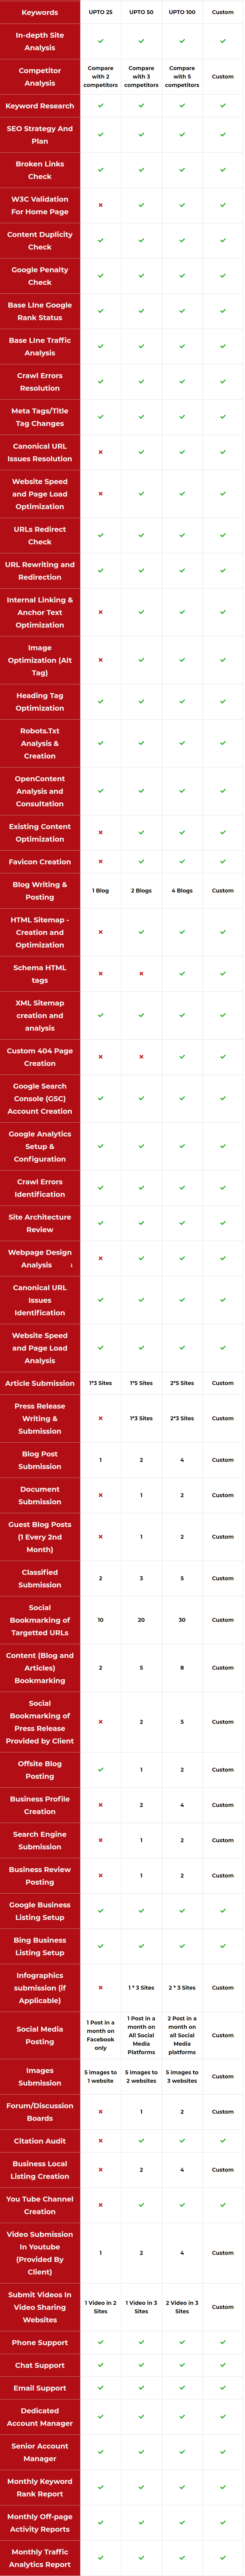 SEO Services Features